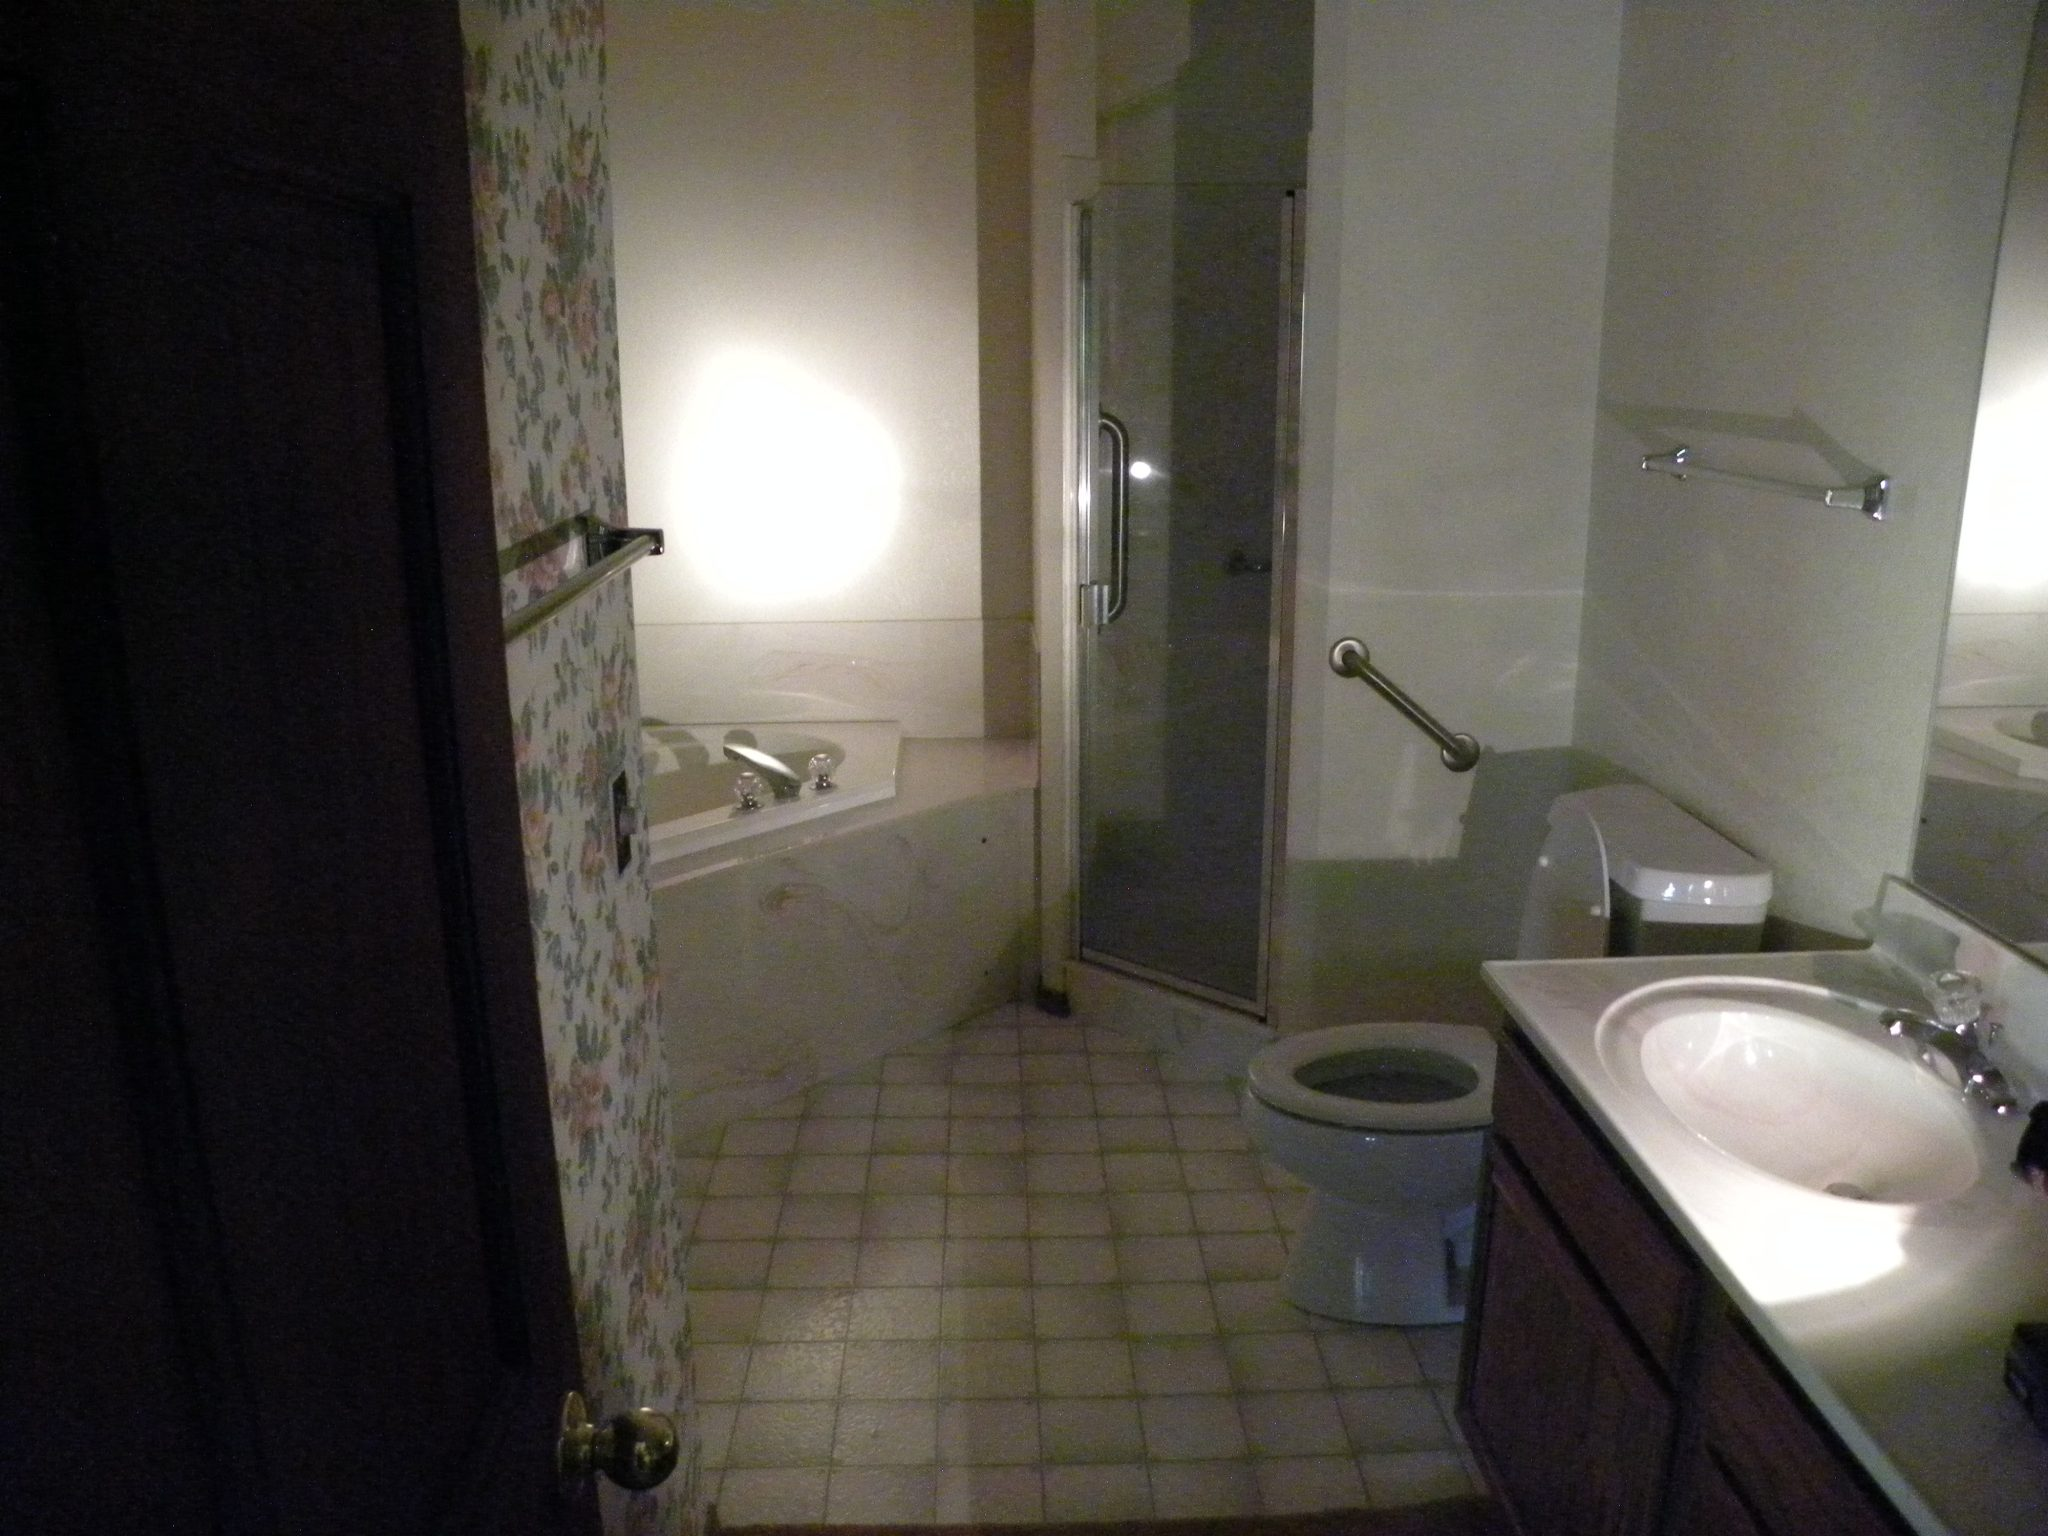 Interior shot of a residential master bathroom ready for renovations